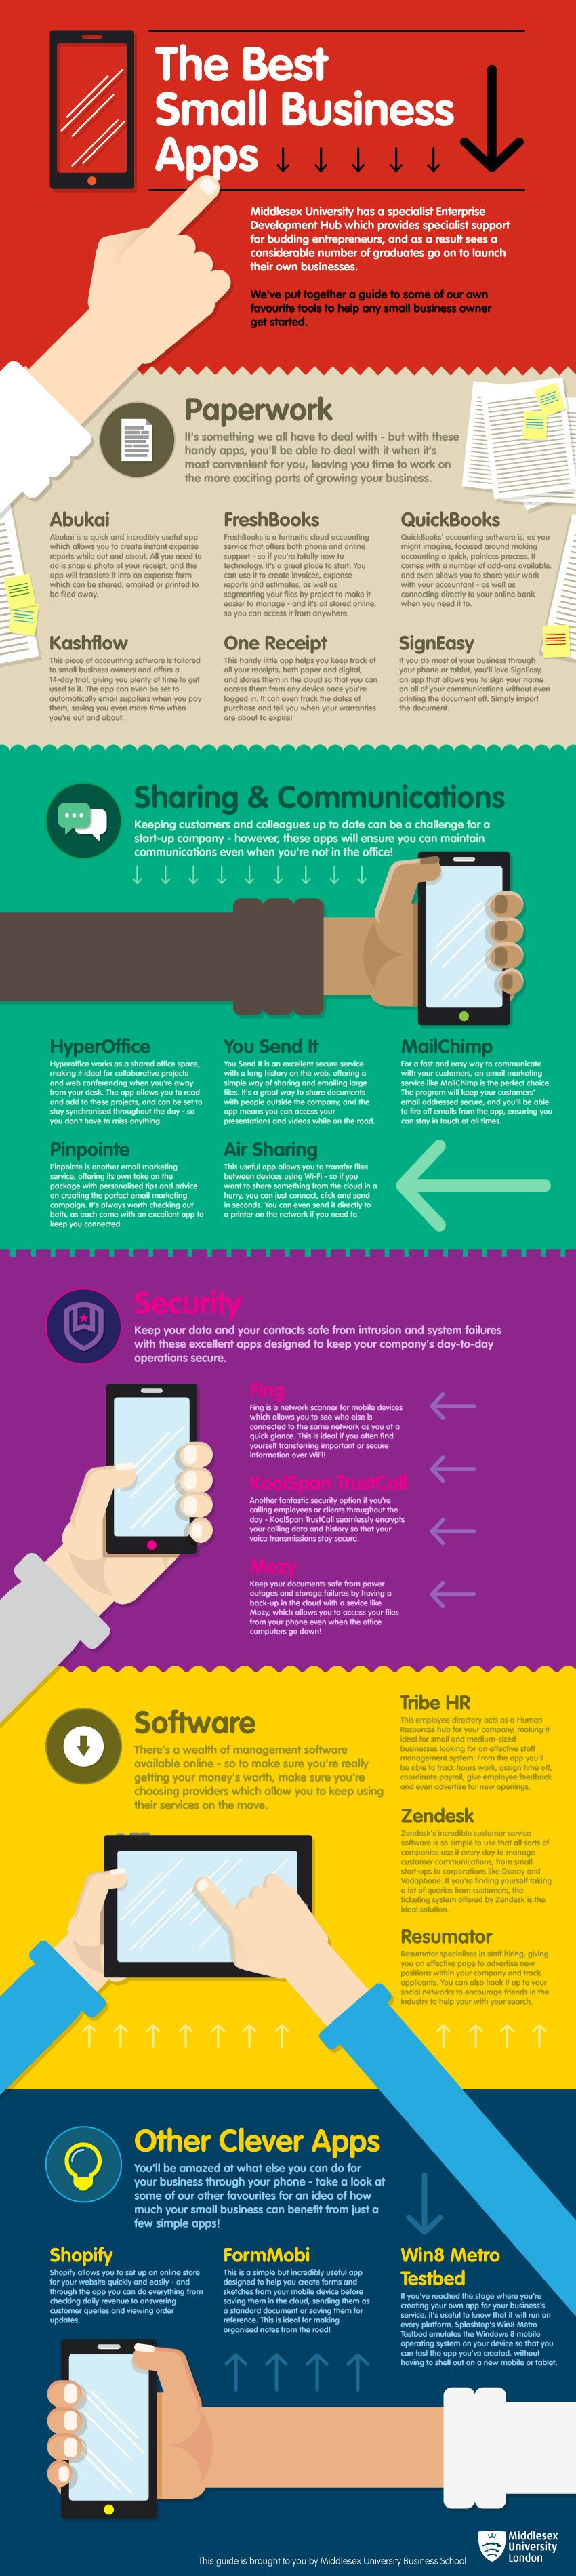 The Best Small Business Apps - #infographic